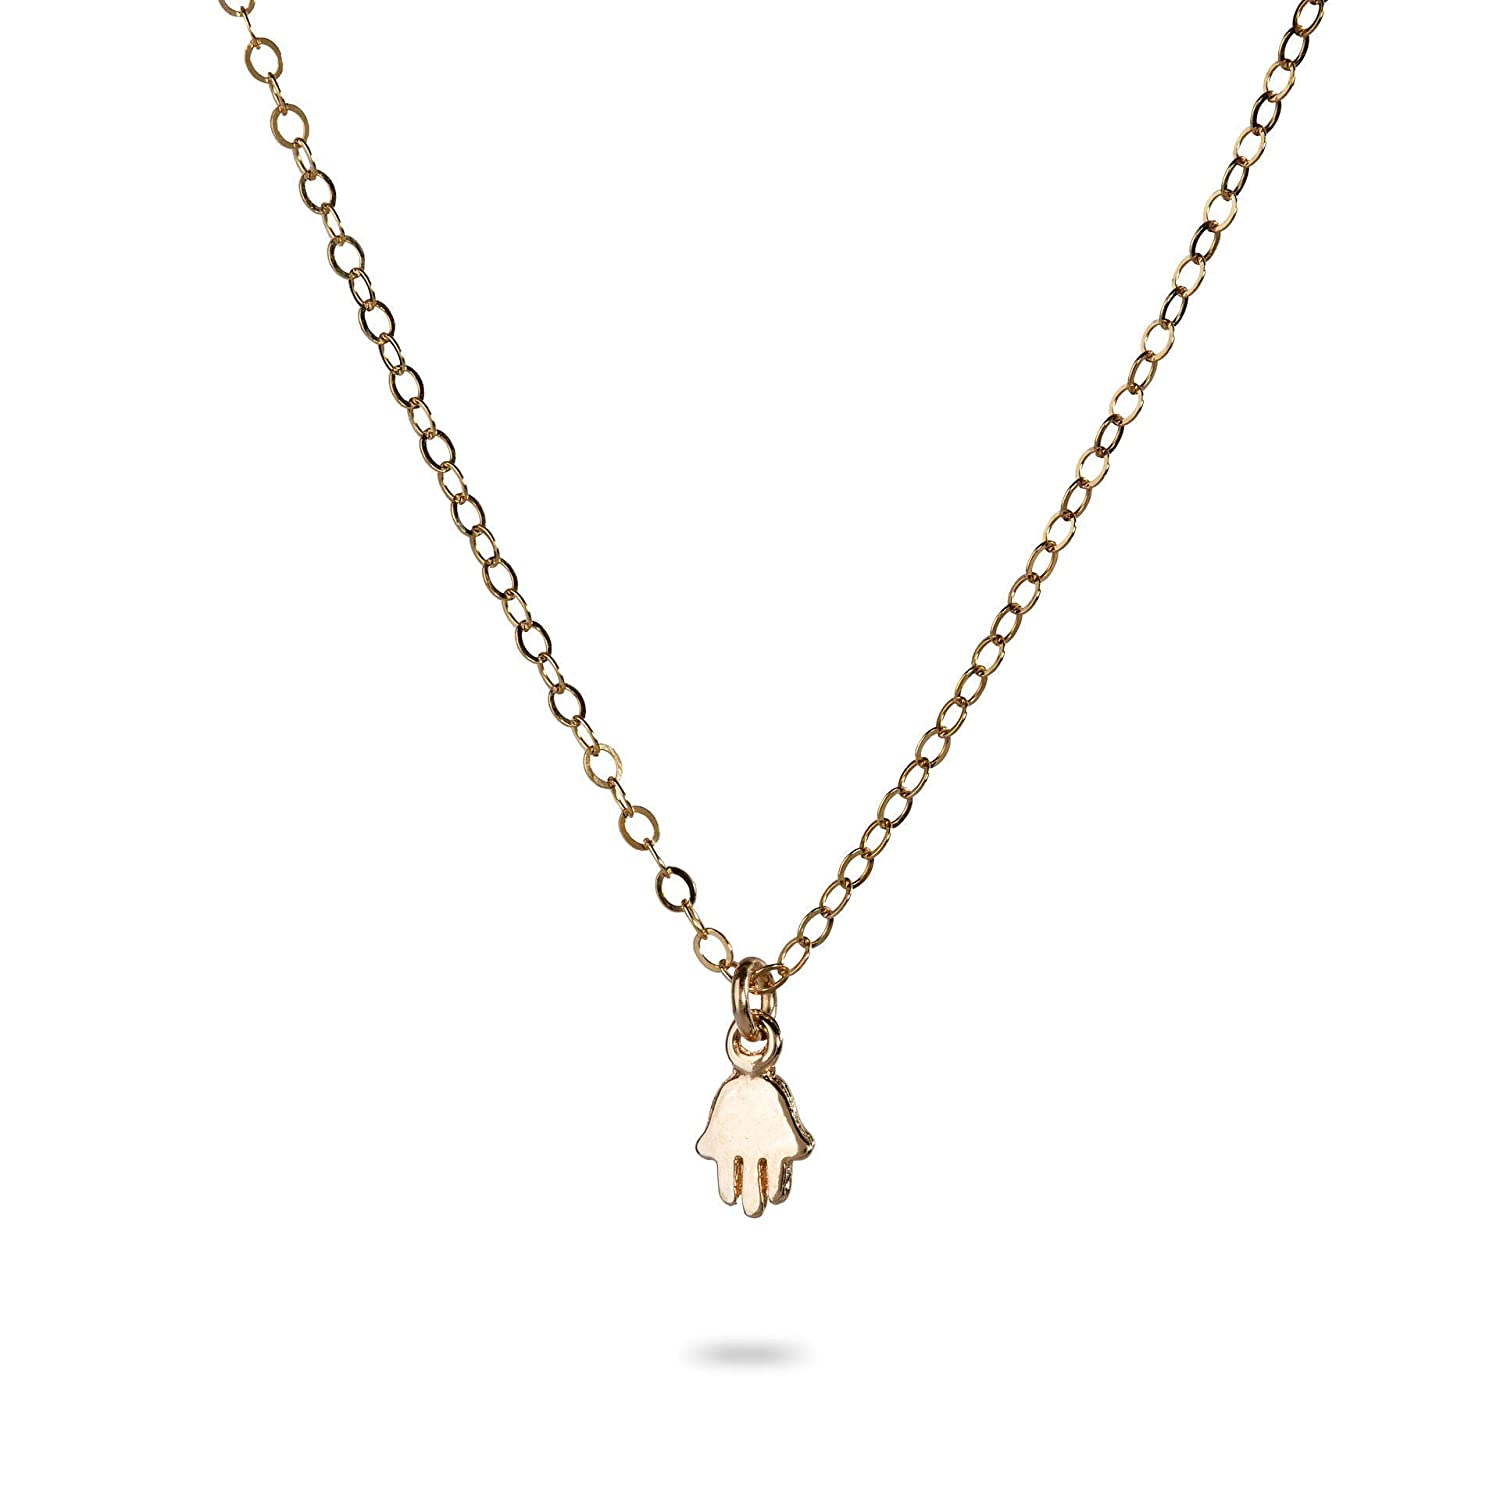 Necklace with a Hamsa pendant